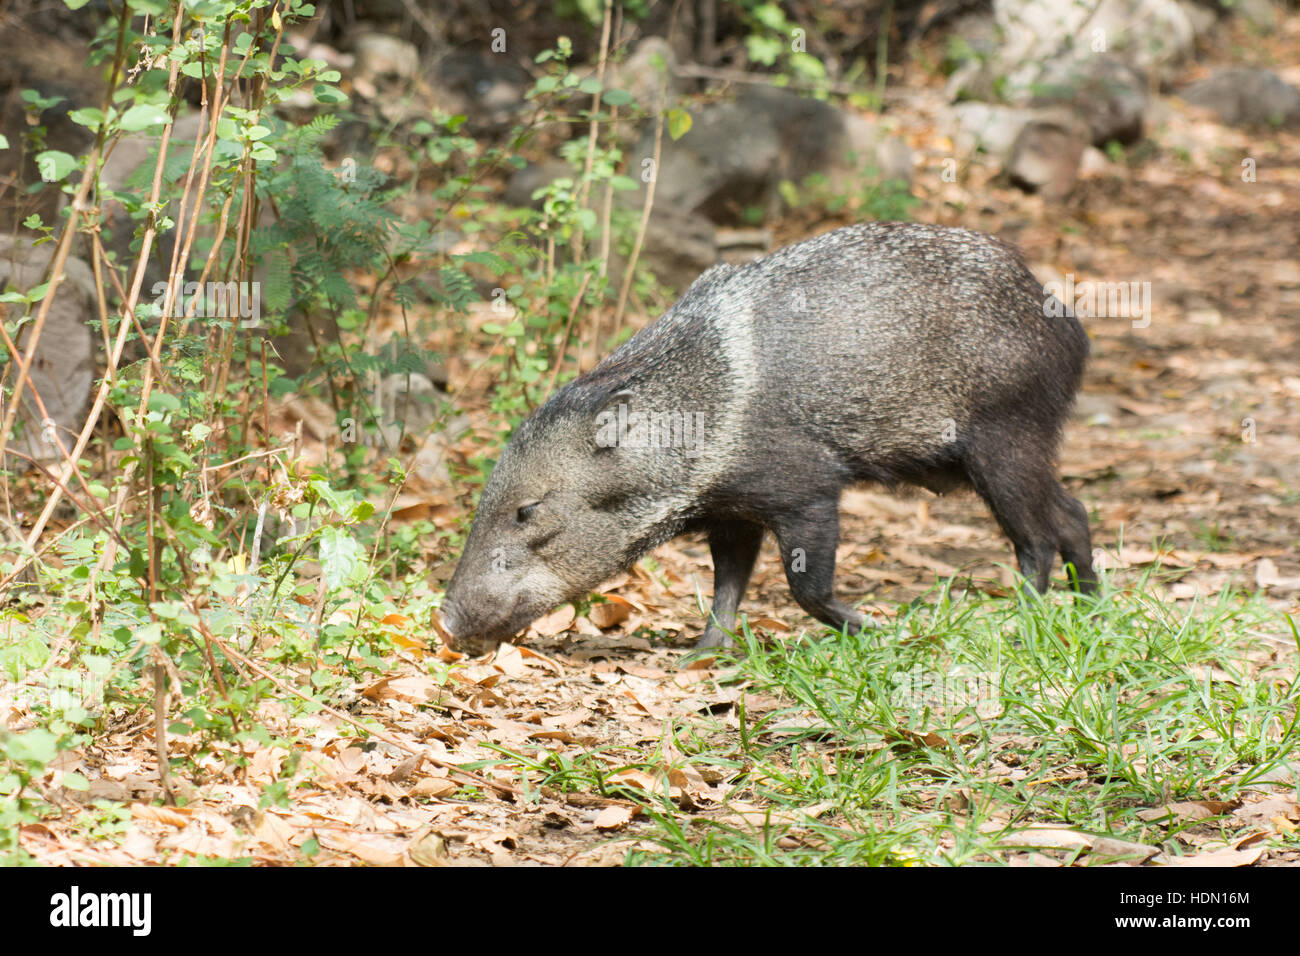 Side view of Collared Peccary (Pecari tajacu) in dry forest habitat at Chaparri Reserve in Chongoyape in northern Stock Photo